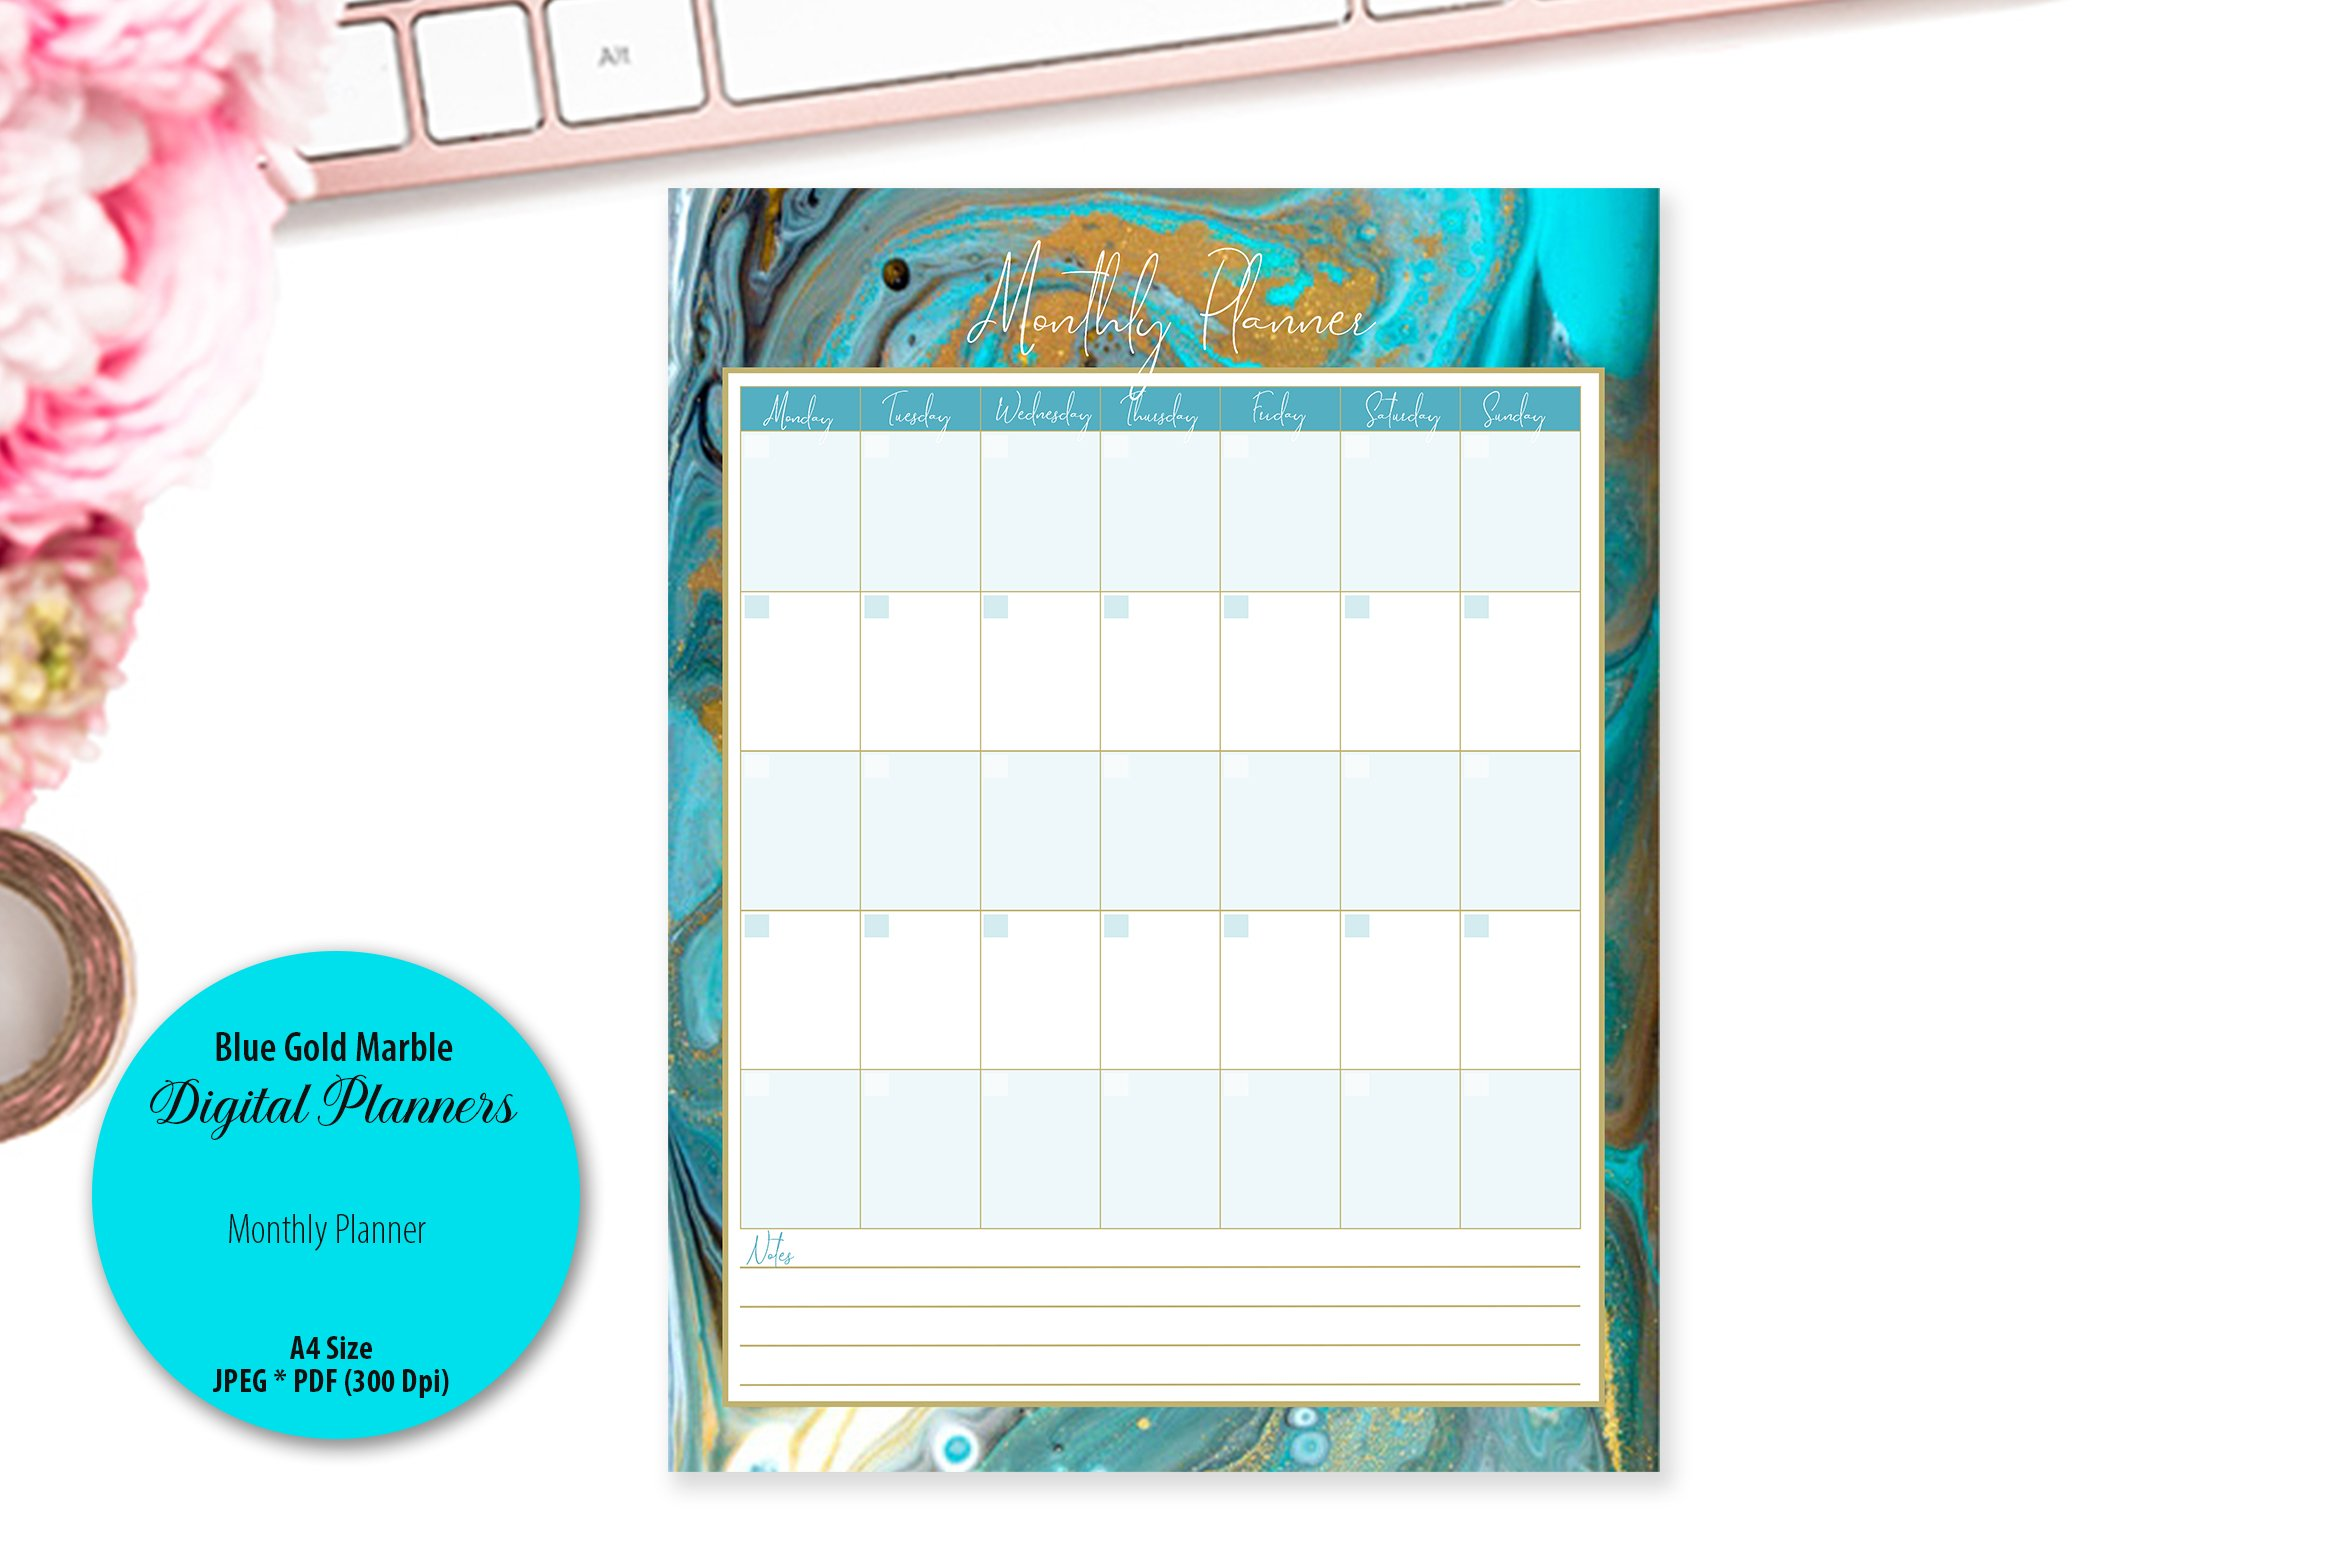 Blue Gold Marble Digital Planner example image 4